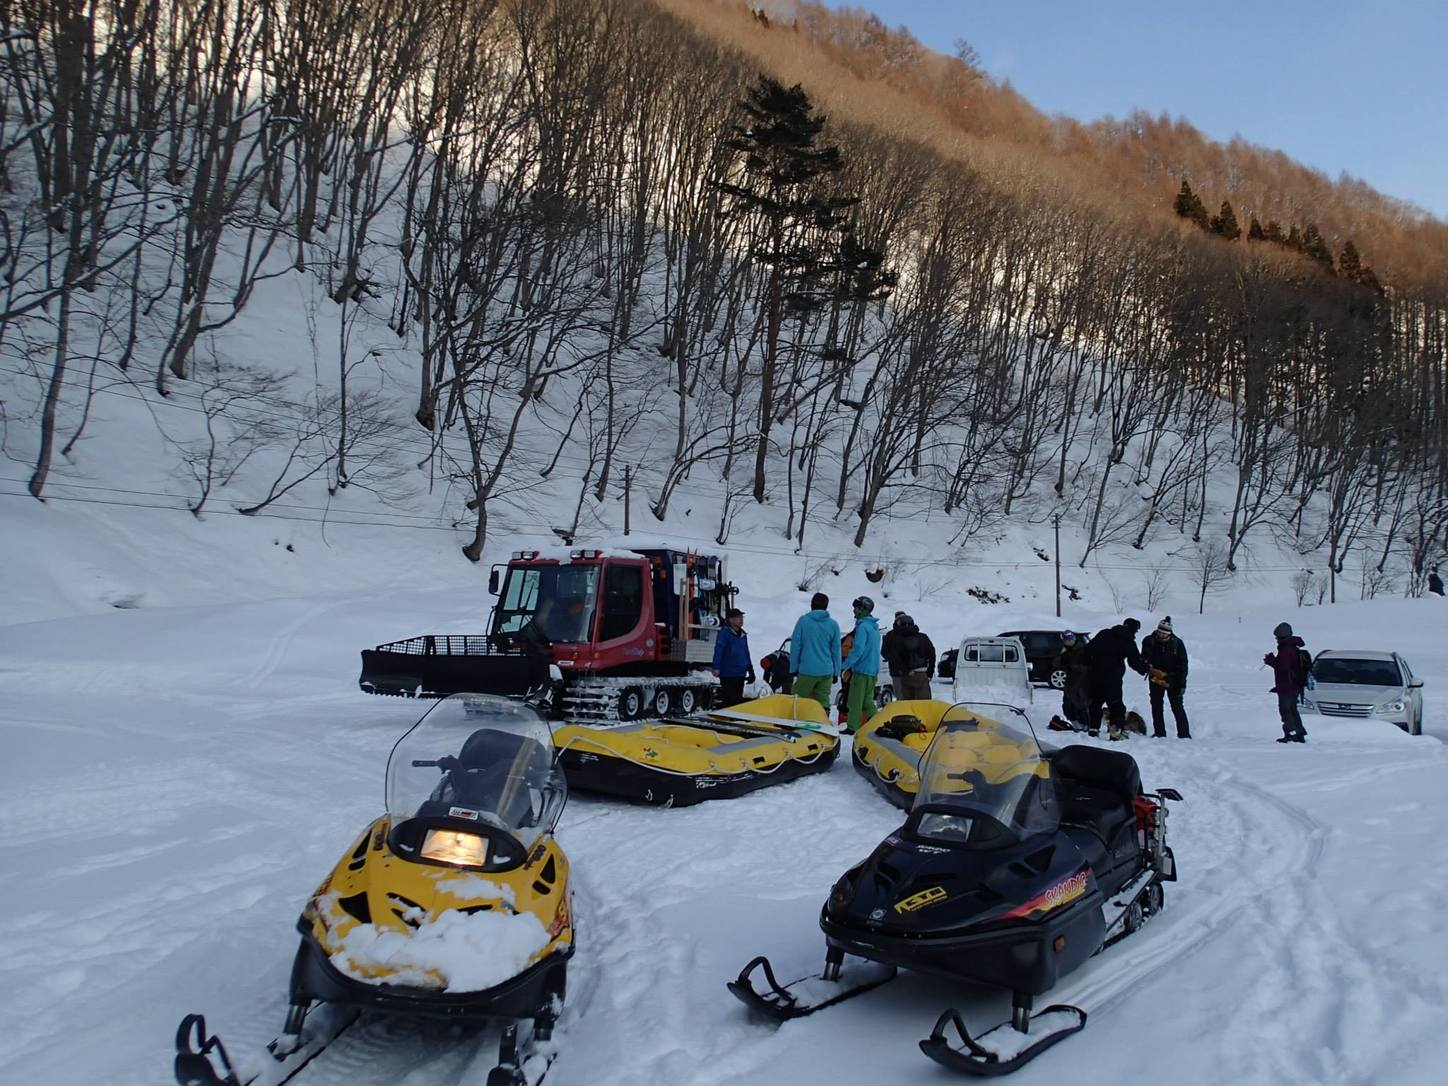 Snowmobiles and rafts. Photo by Phil Luza